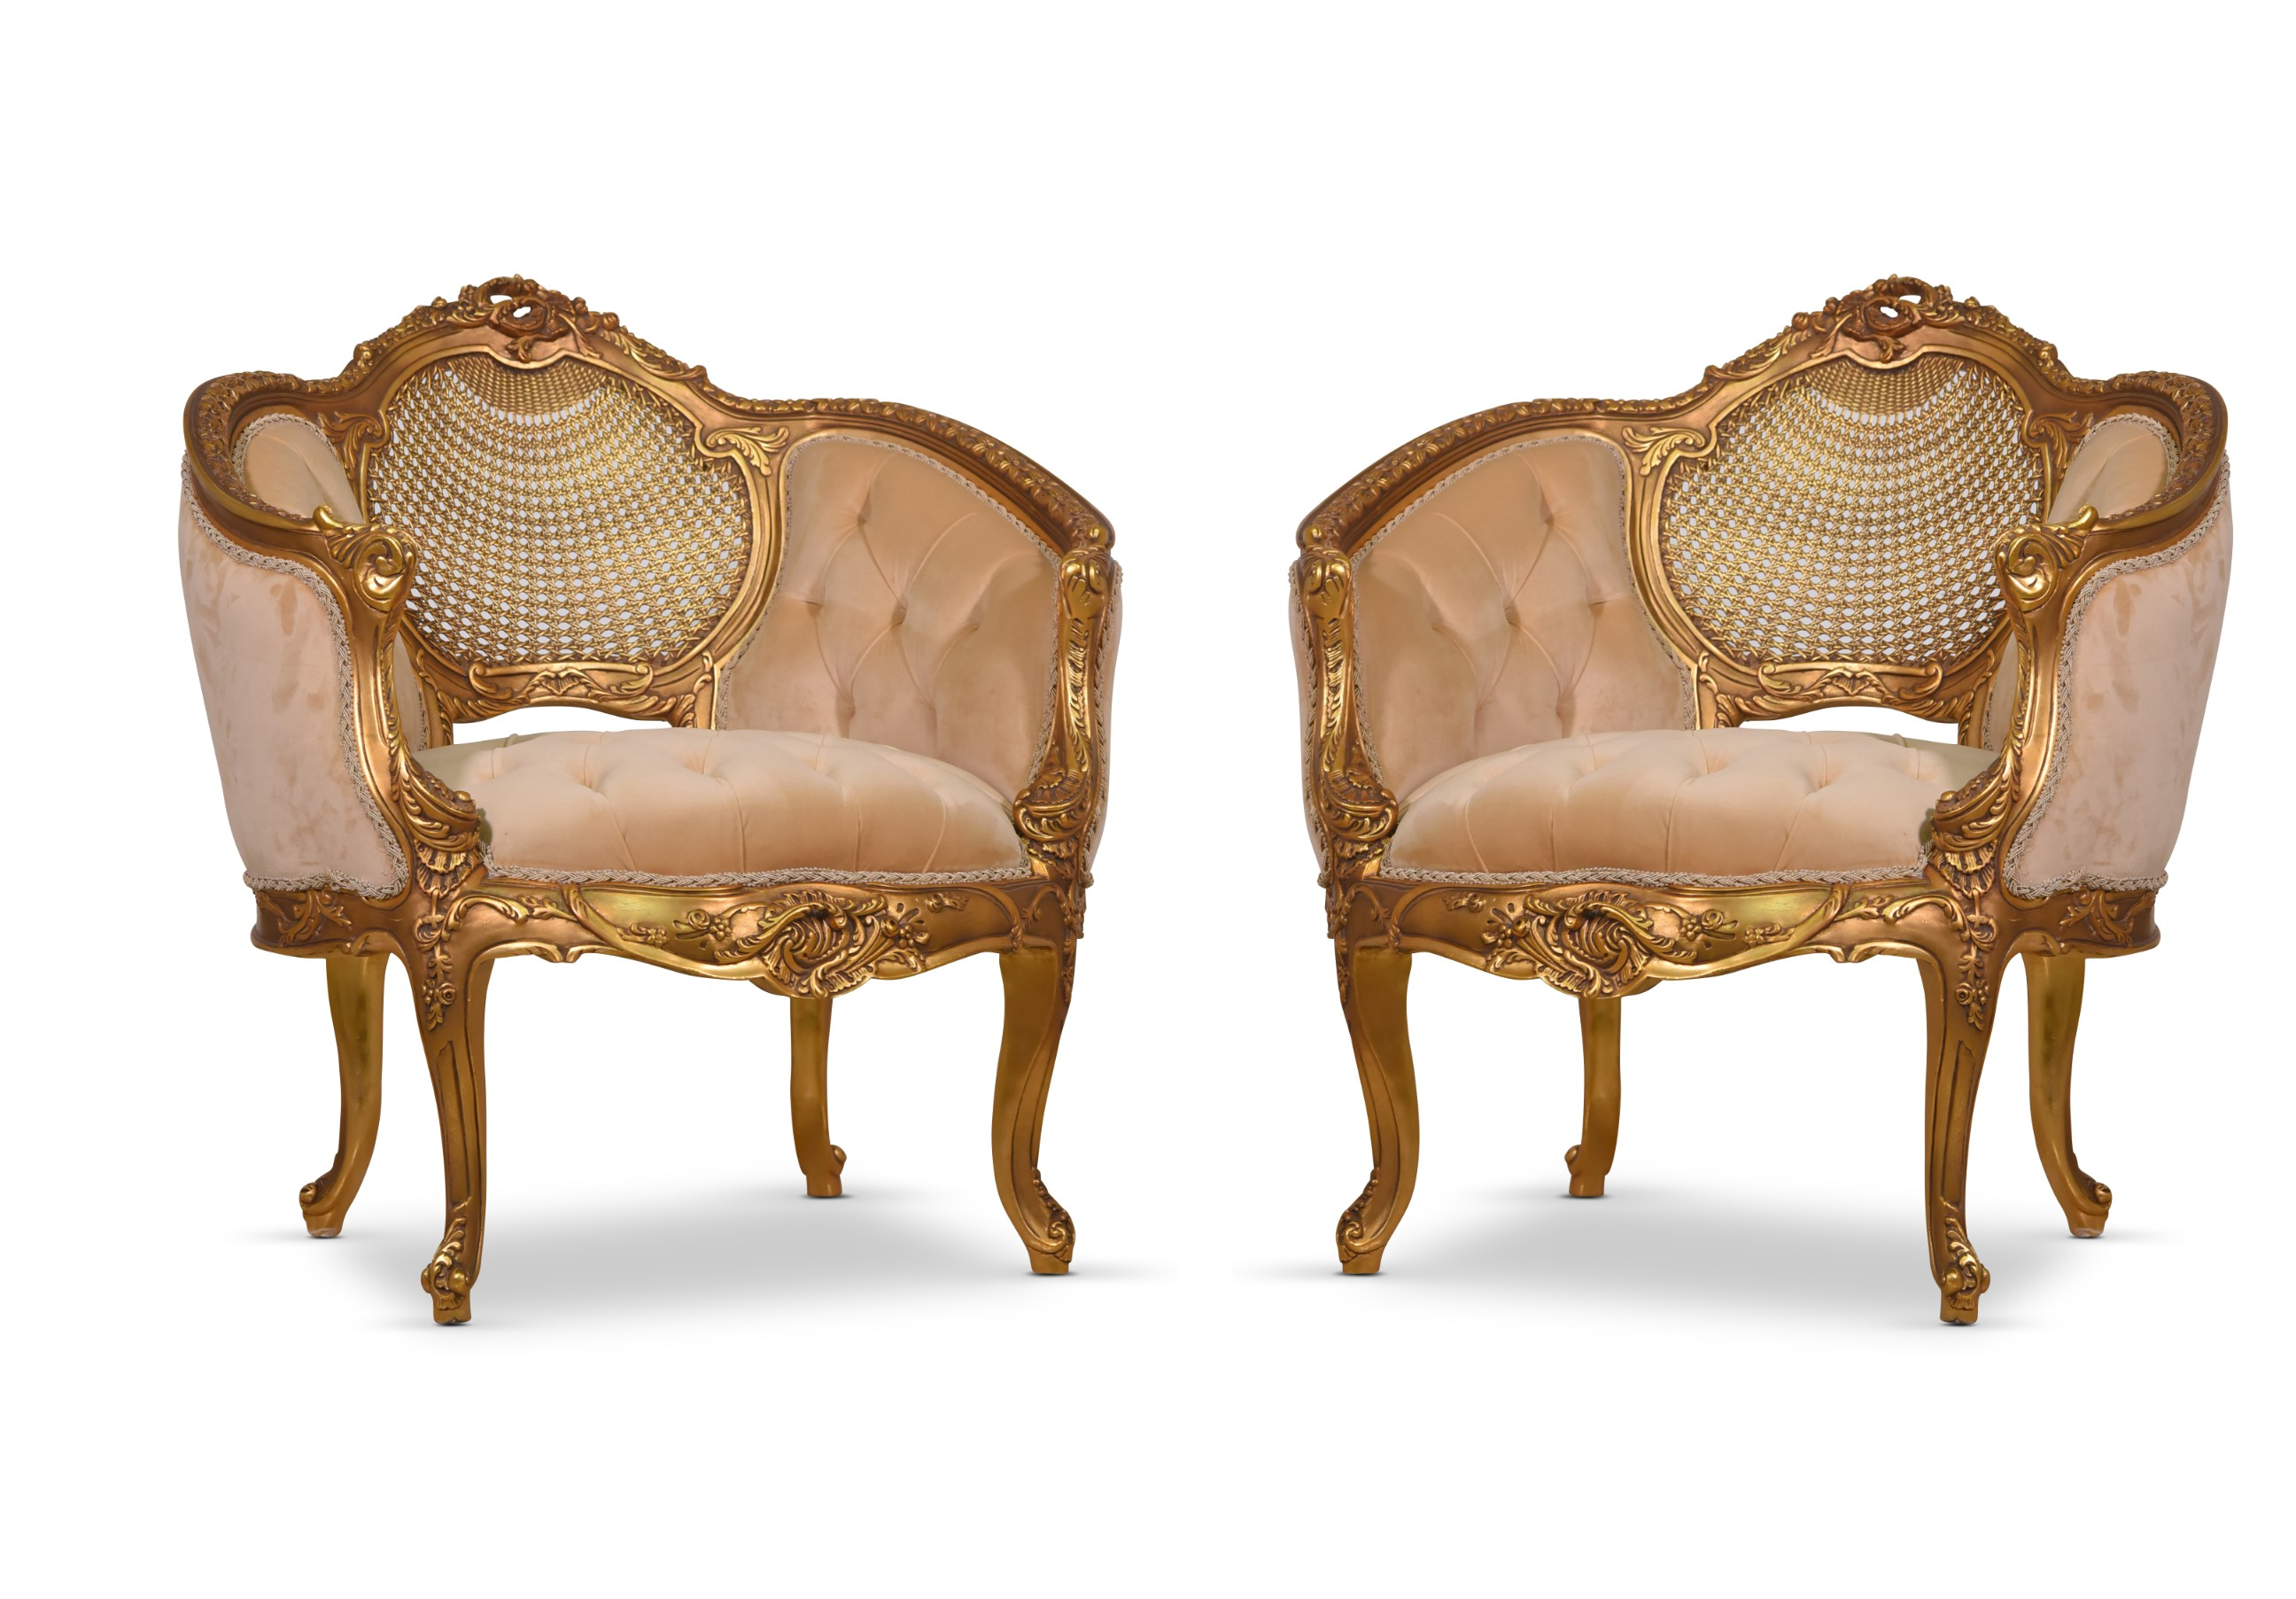 MADE TO ORDER /Acanthus, French Style,Cane Art,Gold leaf, Tufted, Cream beige, Armchair (Set of 2)